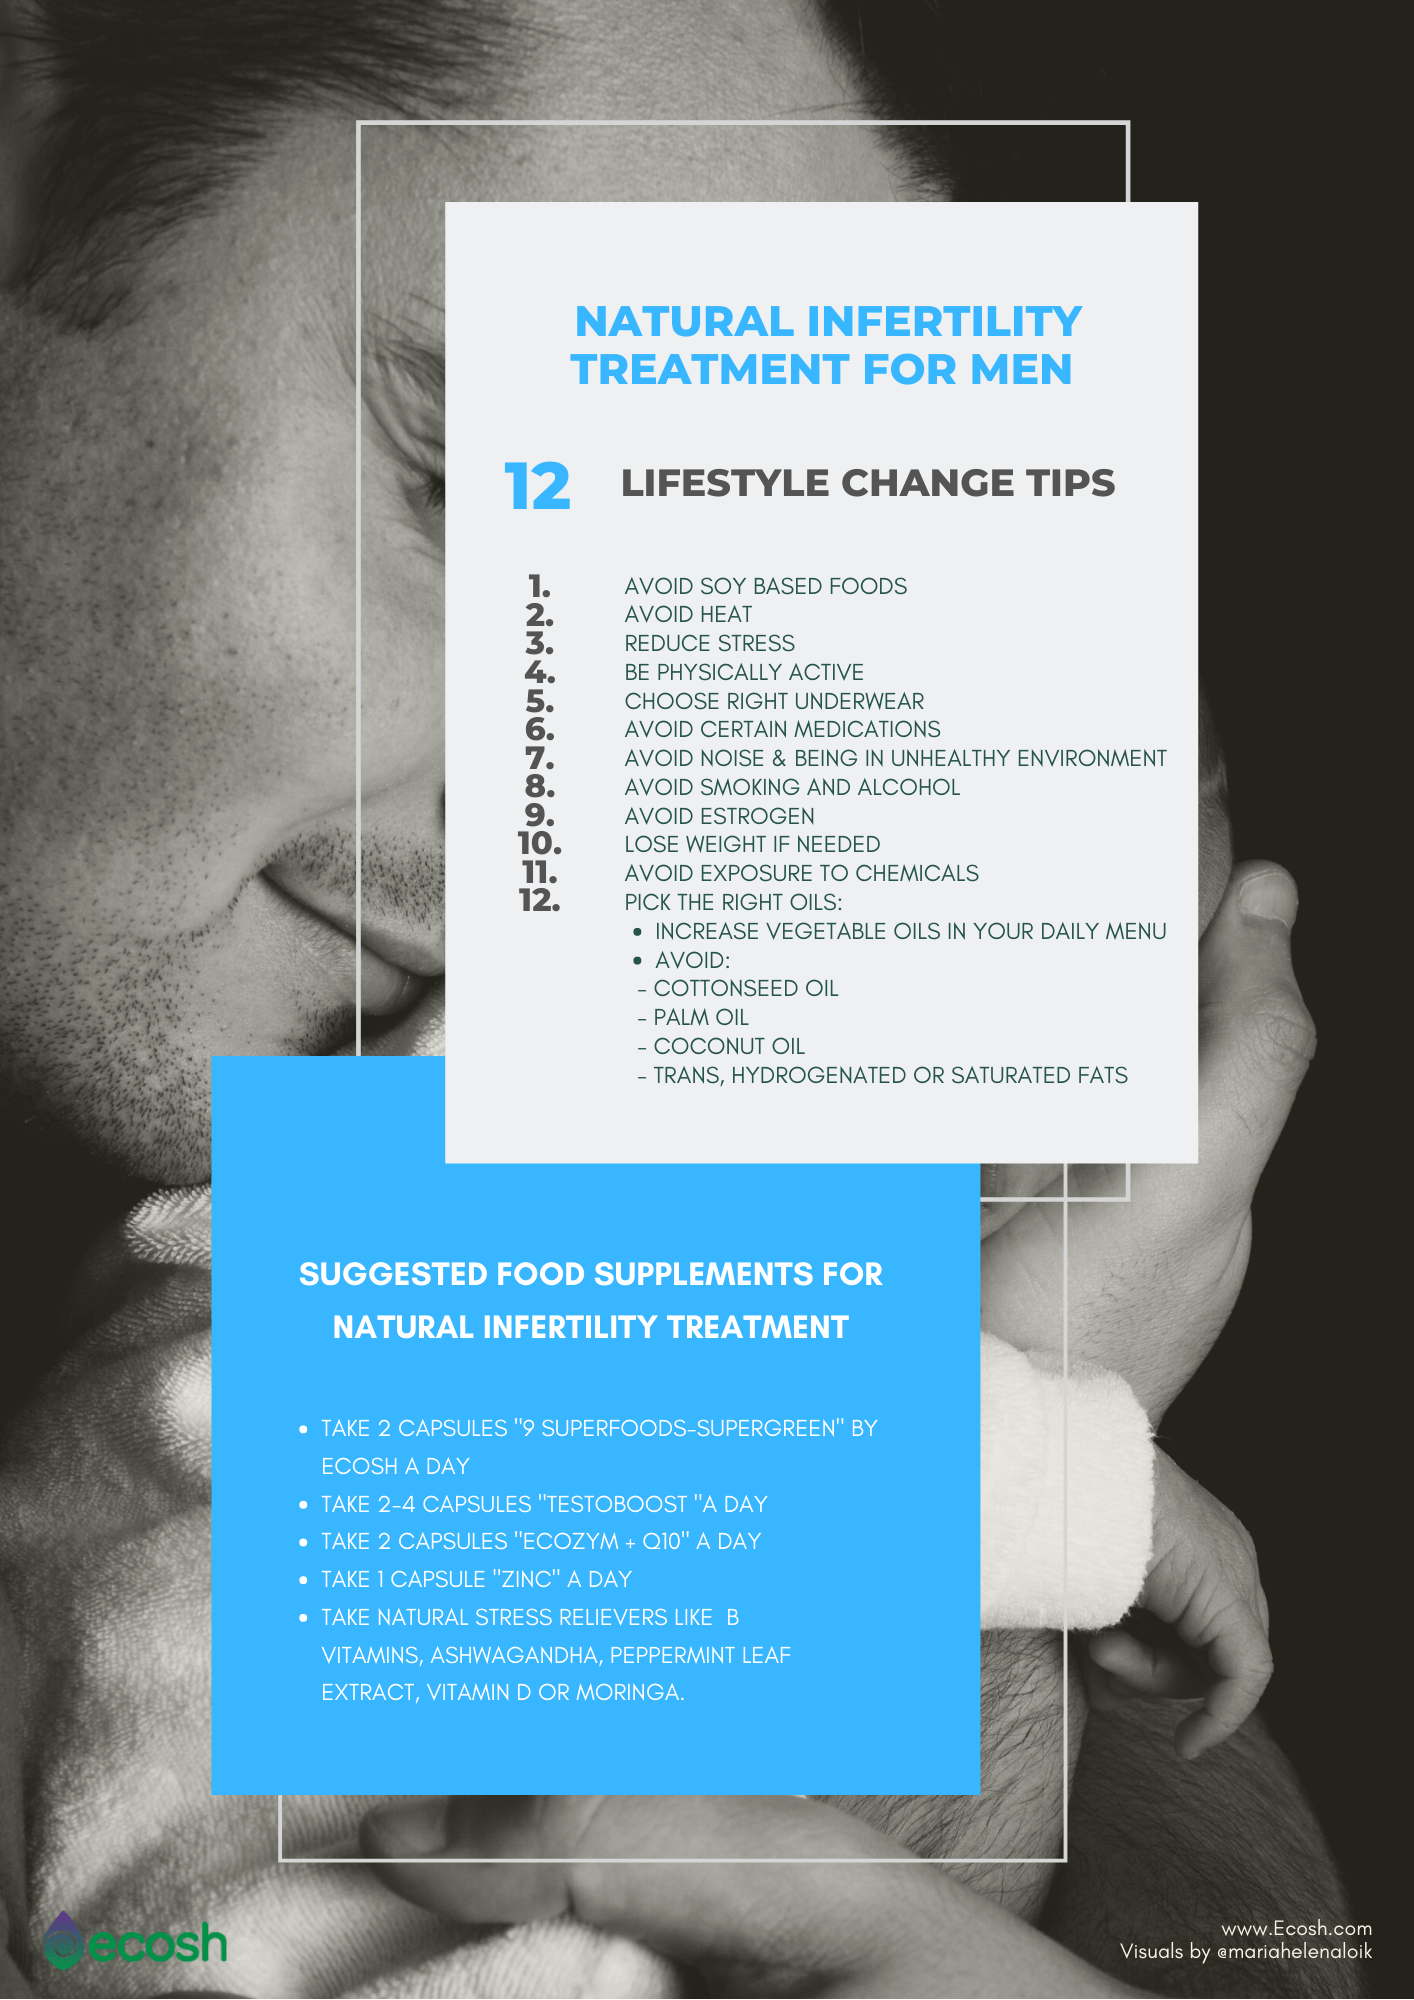 Natural_Infertility_Treatment_For_Men_